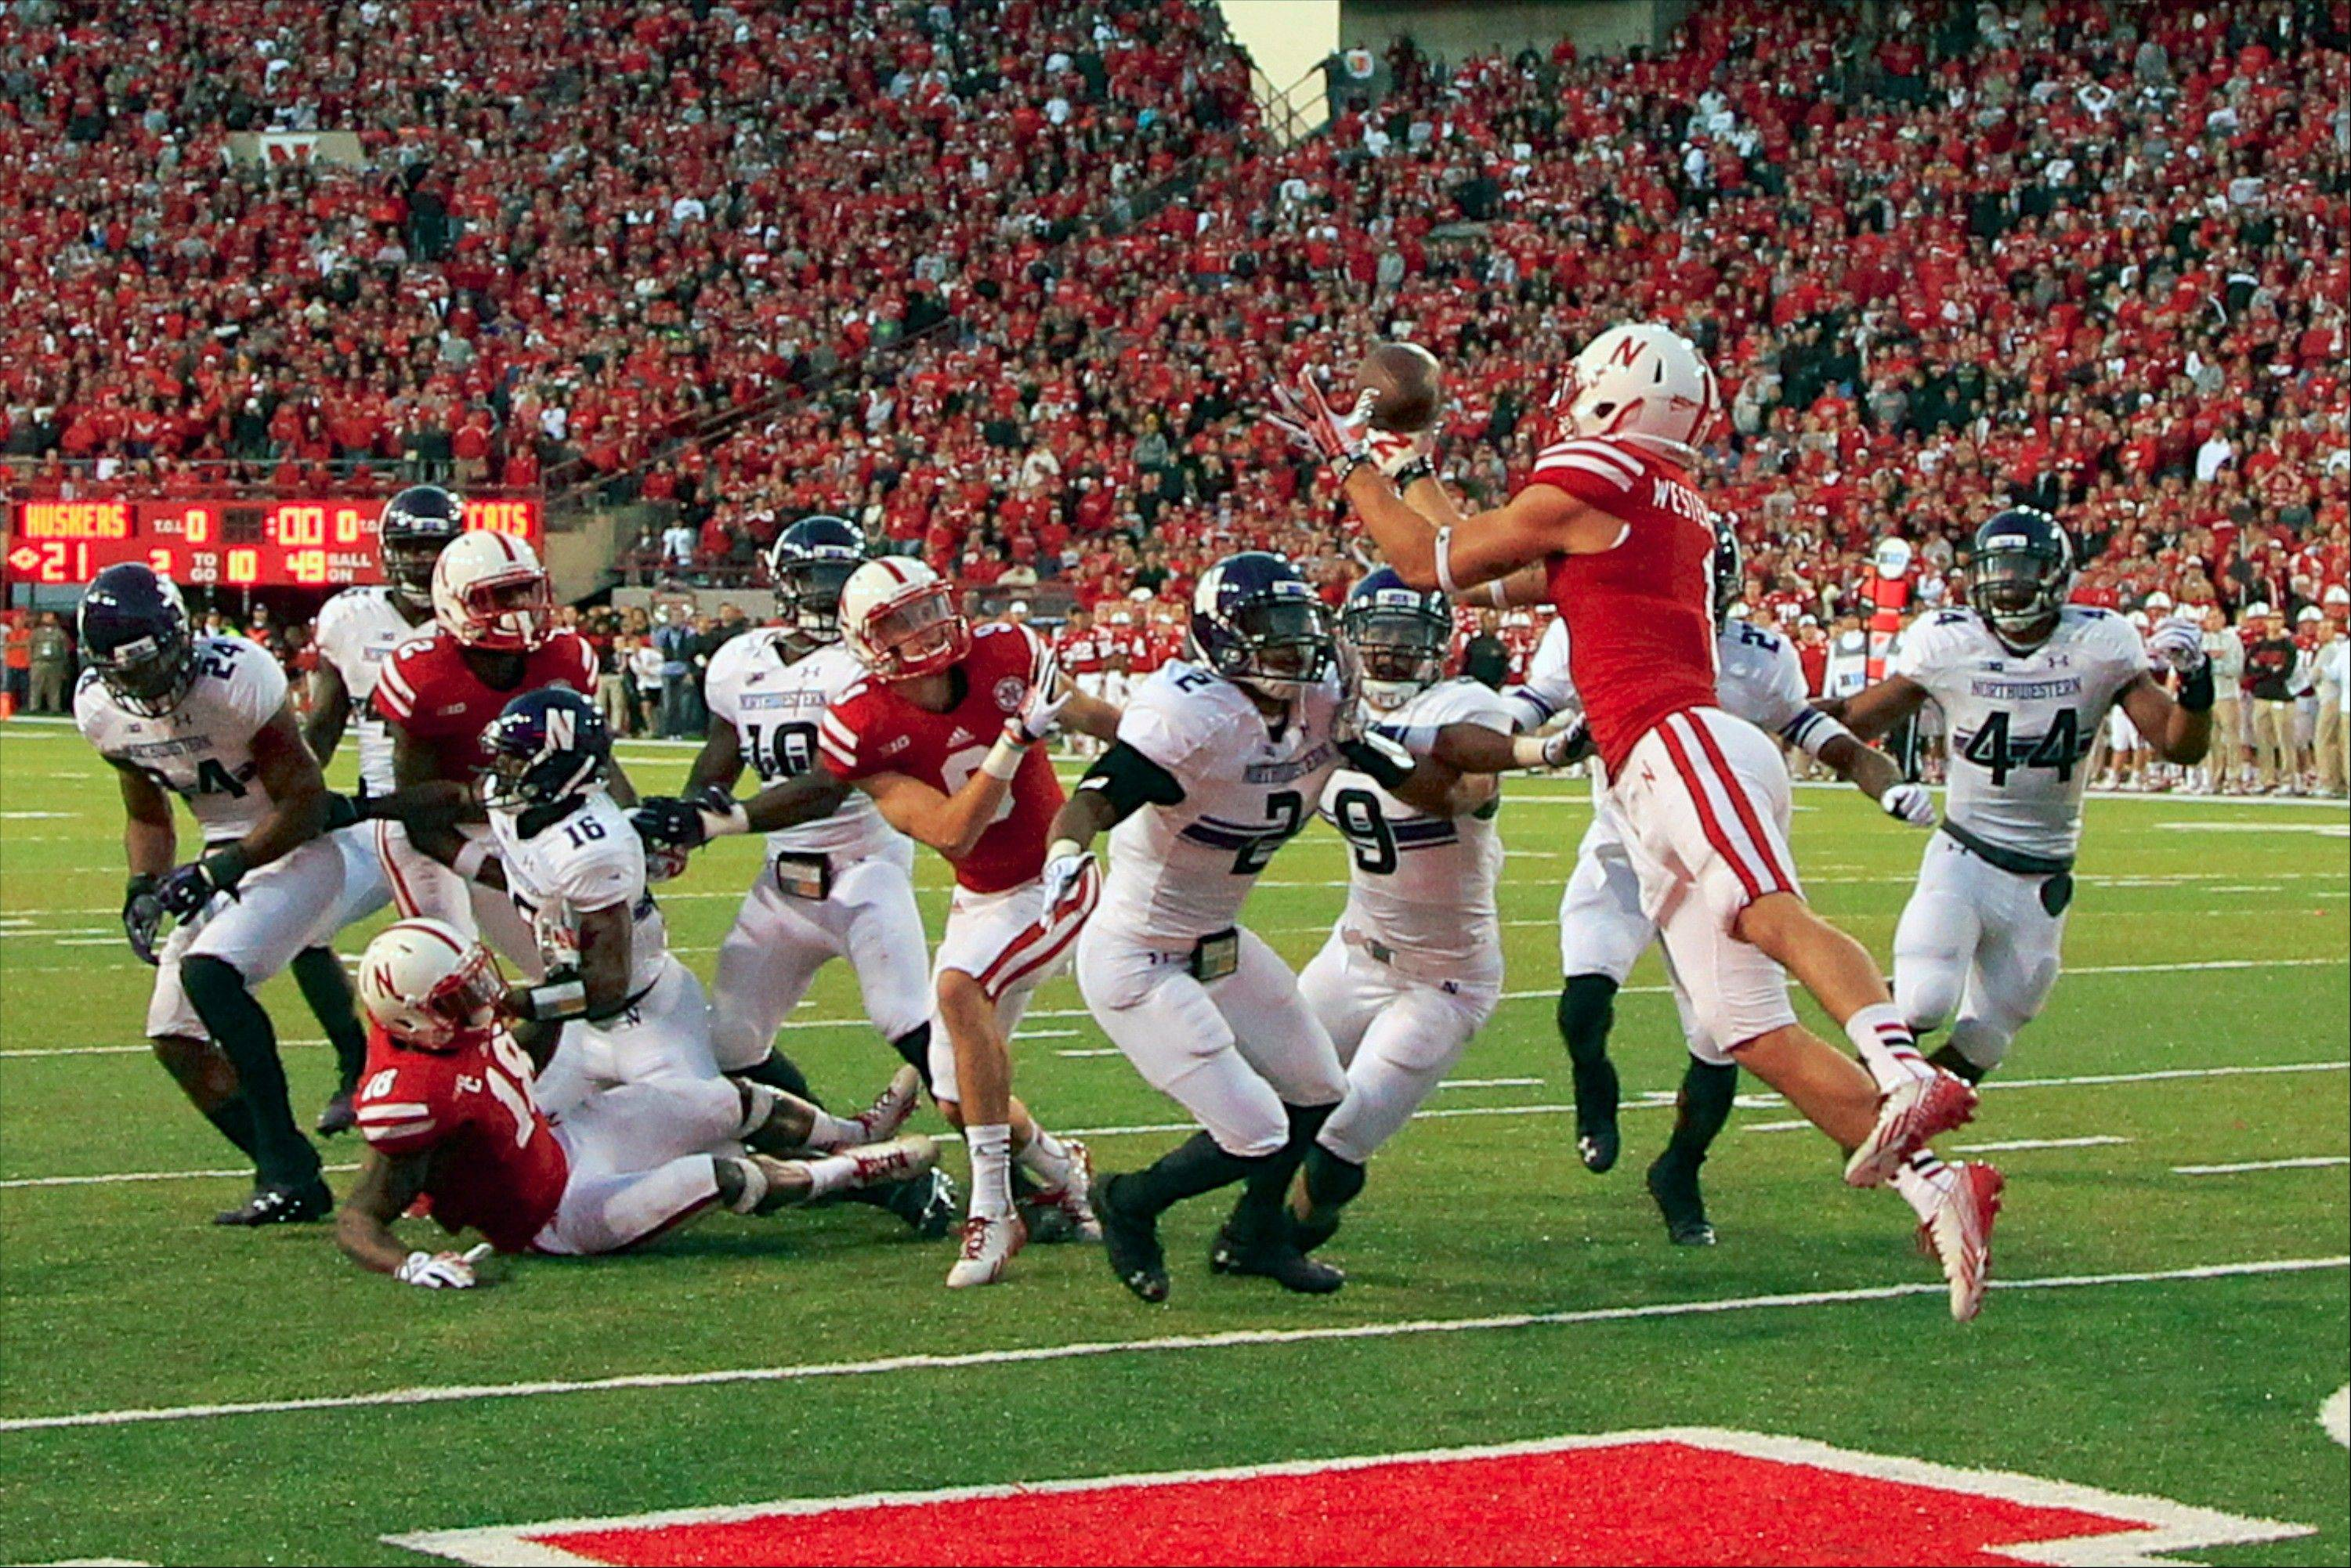 Nebraska wide receiver Jordan Westerkamp (1) catches the game-winning touchdown over Northwestern center back Dwight White (2) , safety Jimmy Hall (9) and linebacker Chi Chi Ariguzo (44) with seconds to go in the game Saturday. Nebraska won 27-24.